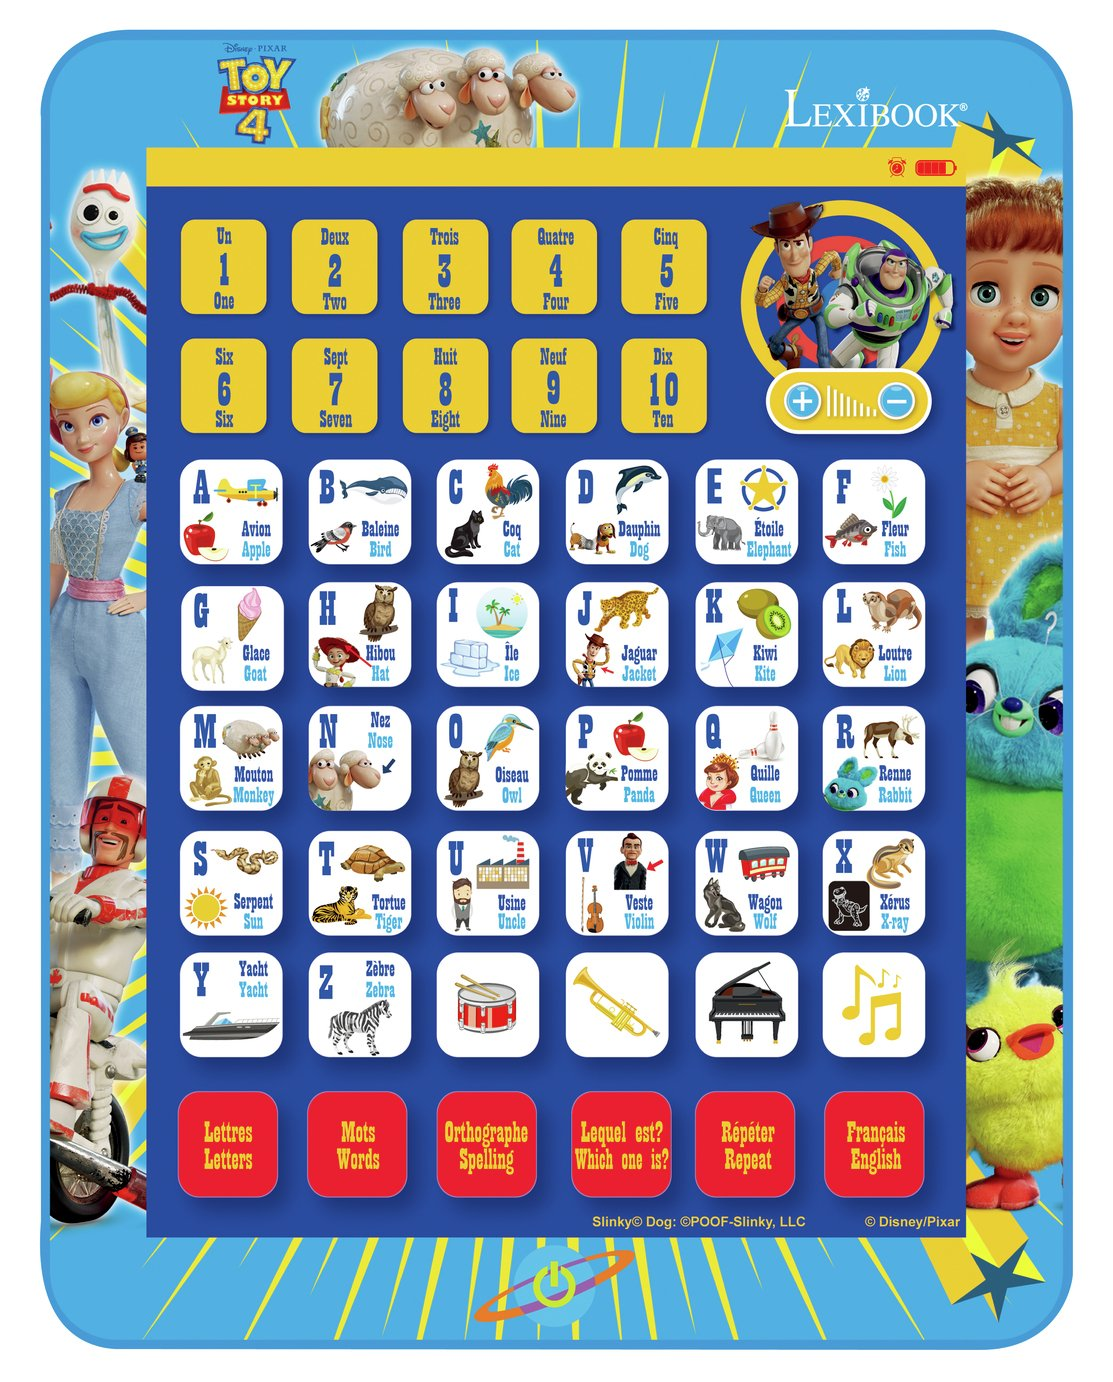 Toy Story Educational Bilingual Interactive Learning Tablet